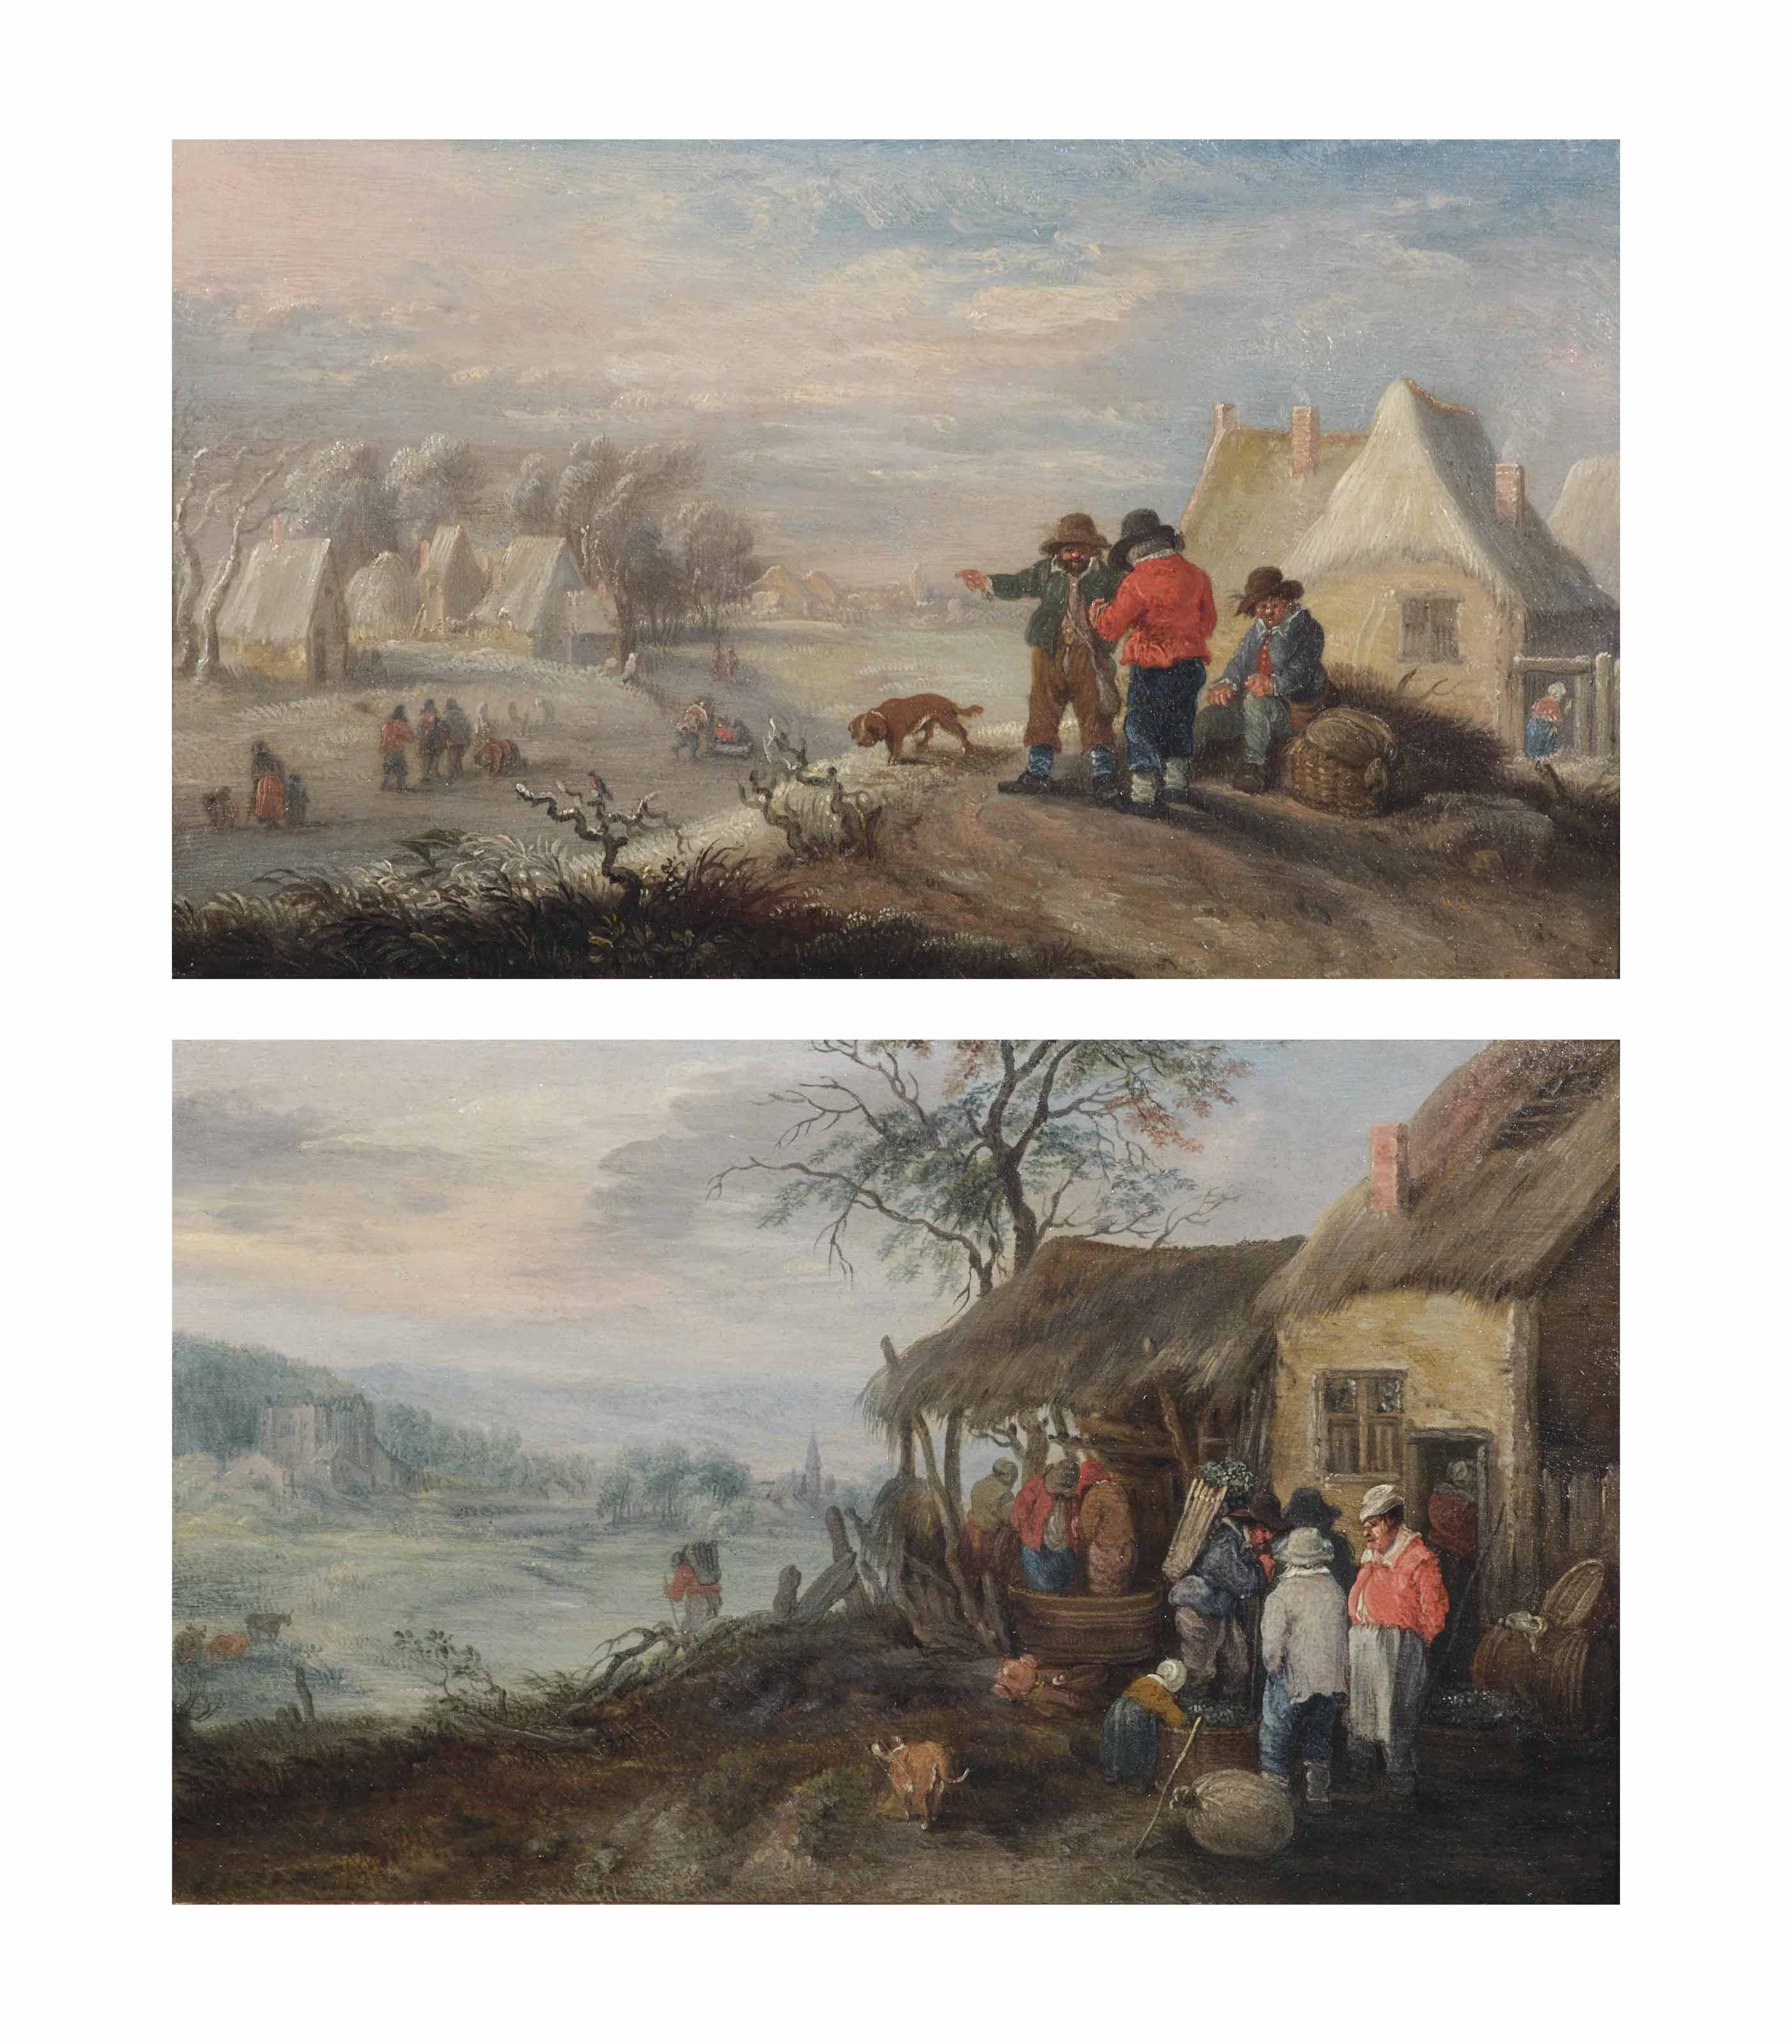 Winter: A landscape with several figures on a frozen river by a village; and Autumn: a hilly landscape with figures making wine